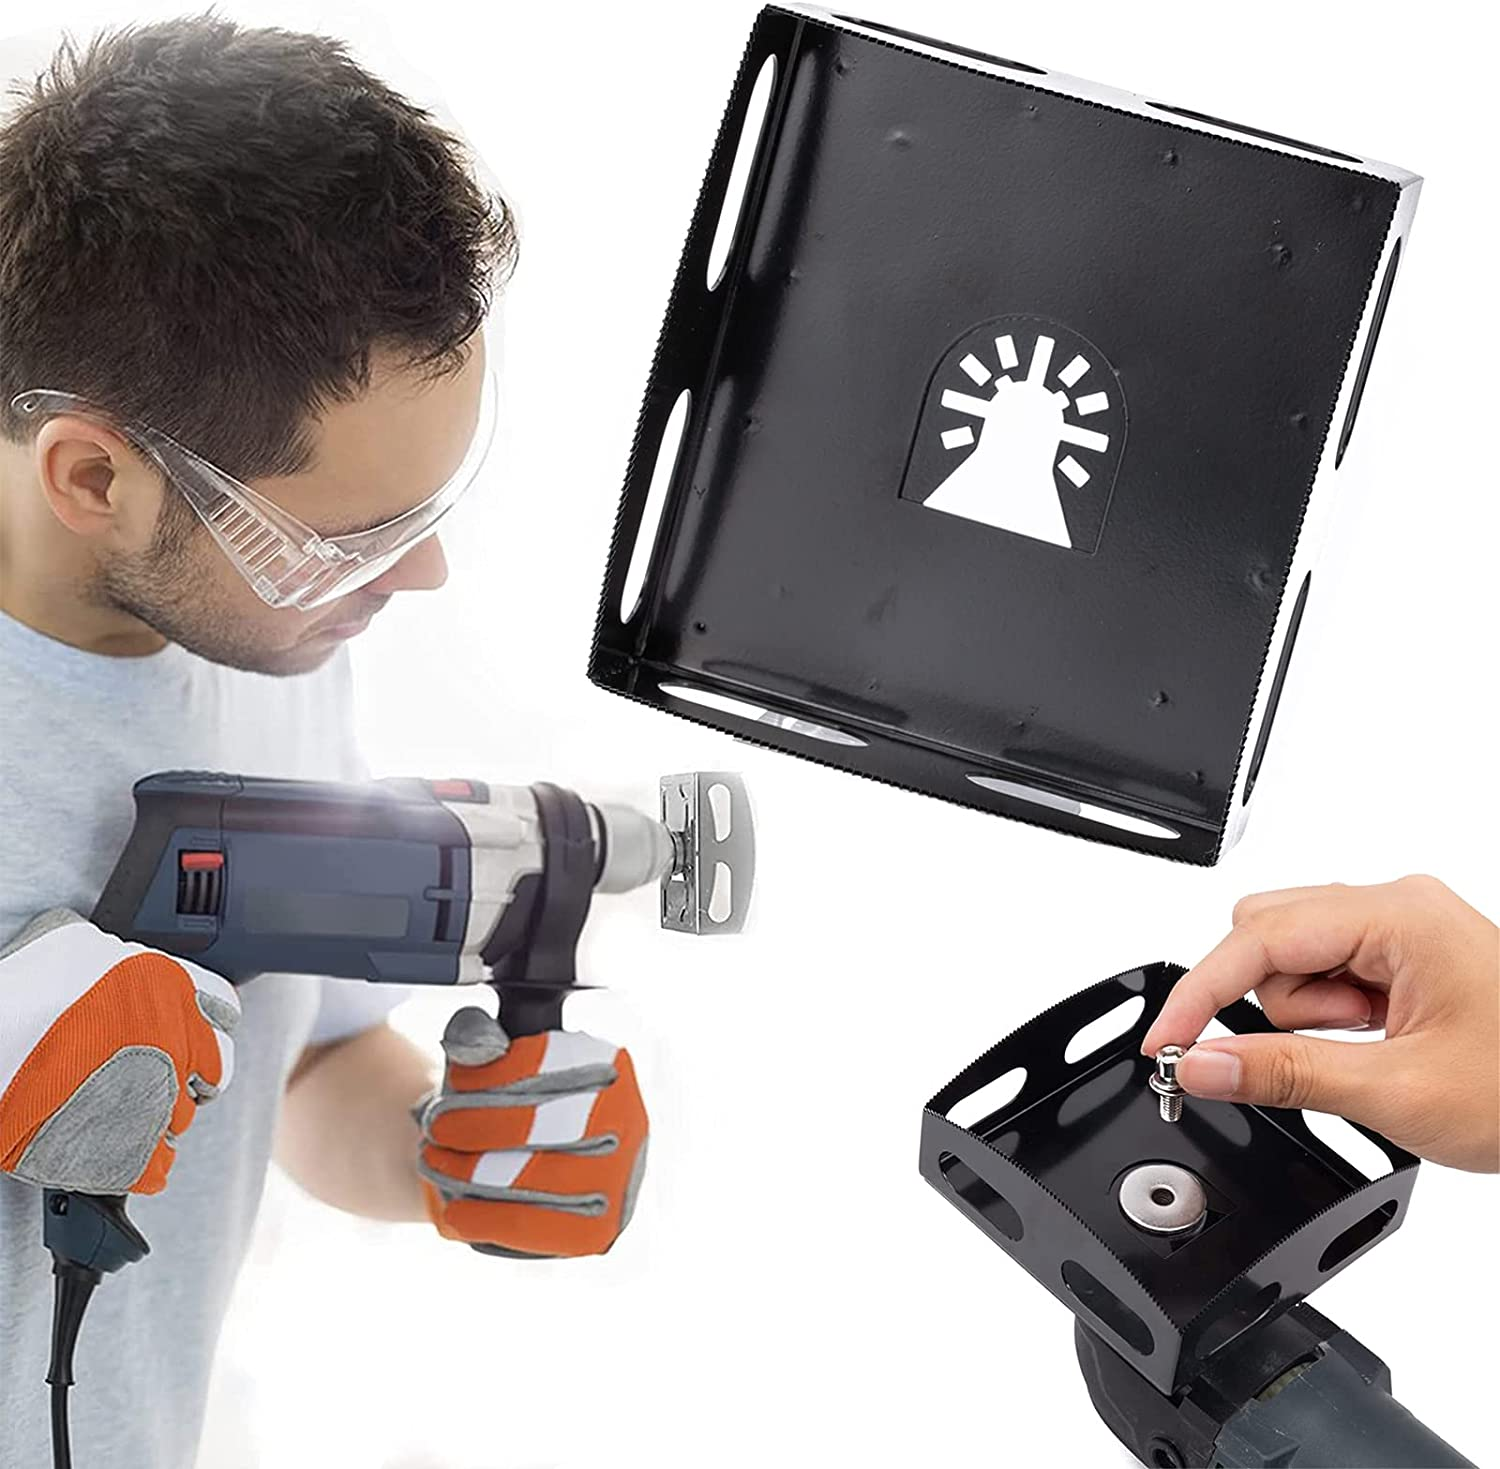 KDAA Square Slot Cutter Rectangle with Limited time sale New low-pricing F